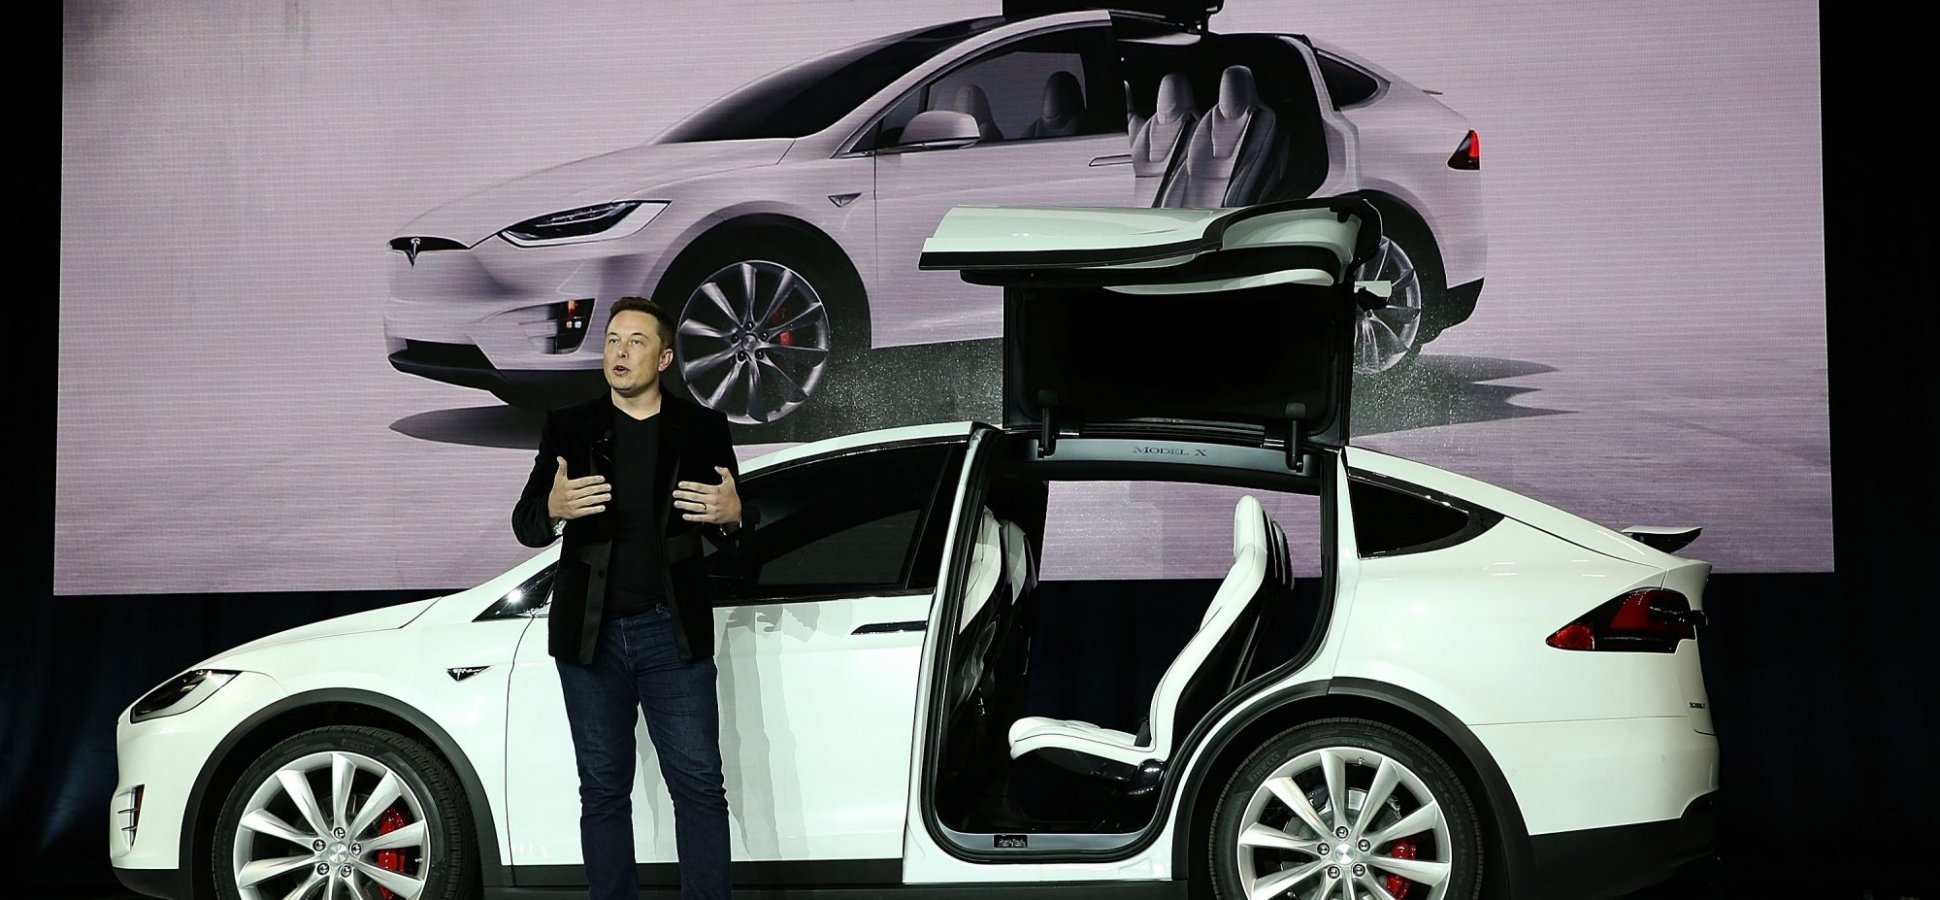 Elon Musk Sent Tesla Employees a Short Email Encouraging Them to Reach Aggressive Delivery Goals